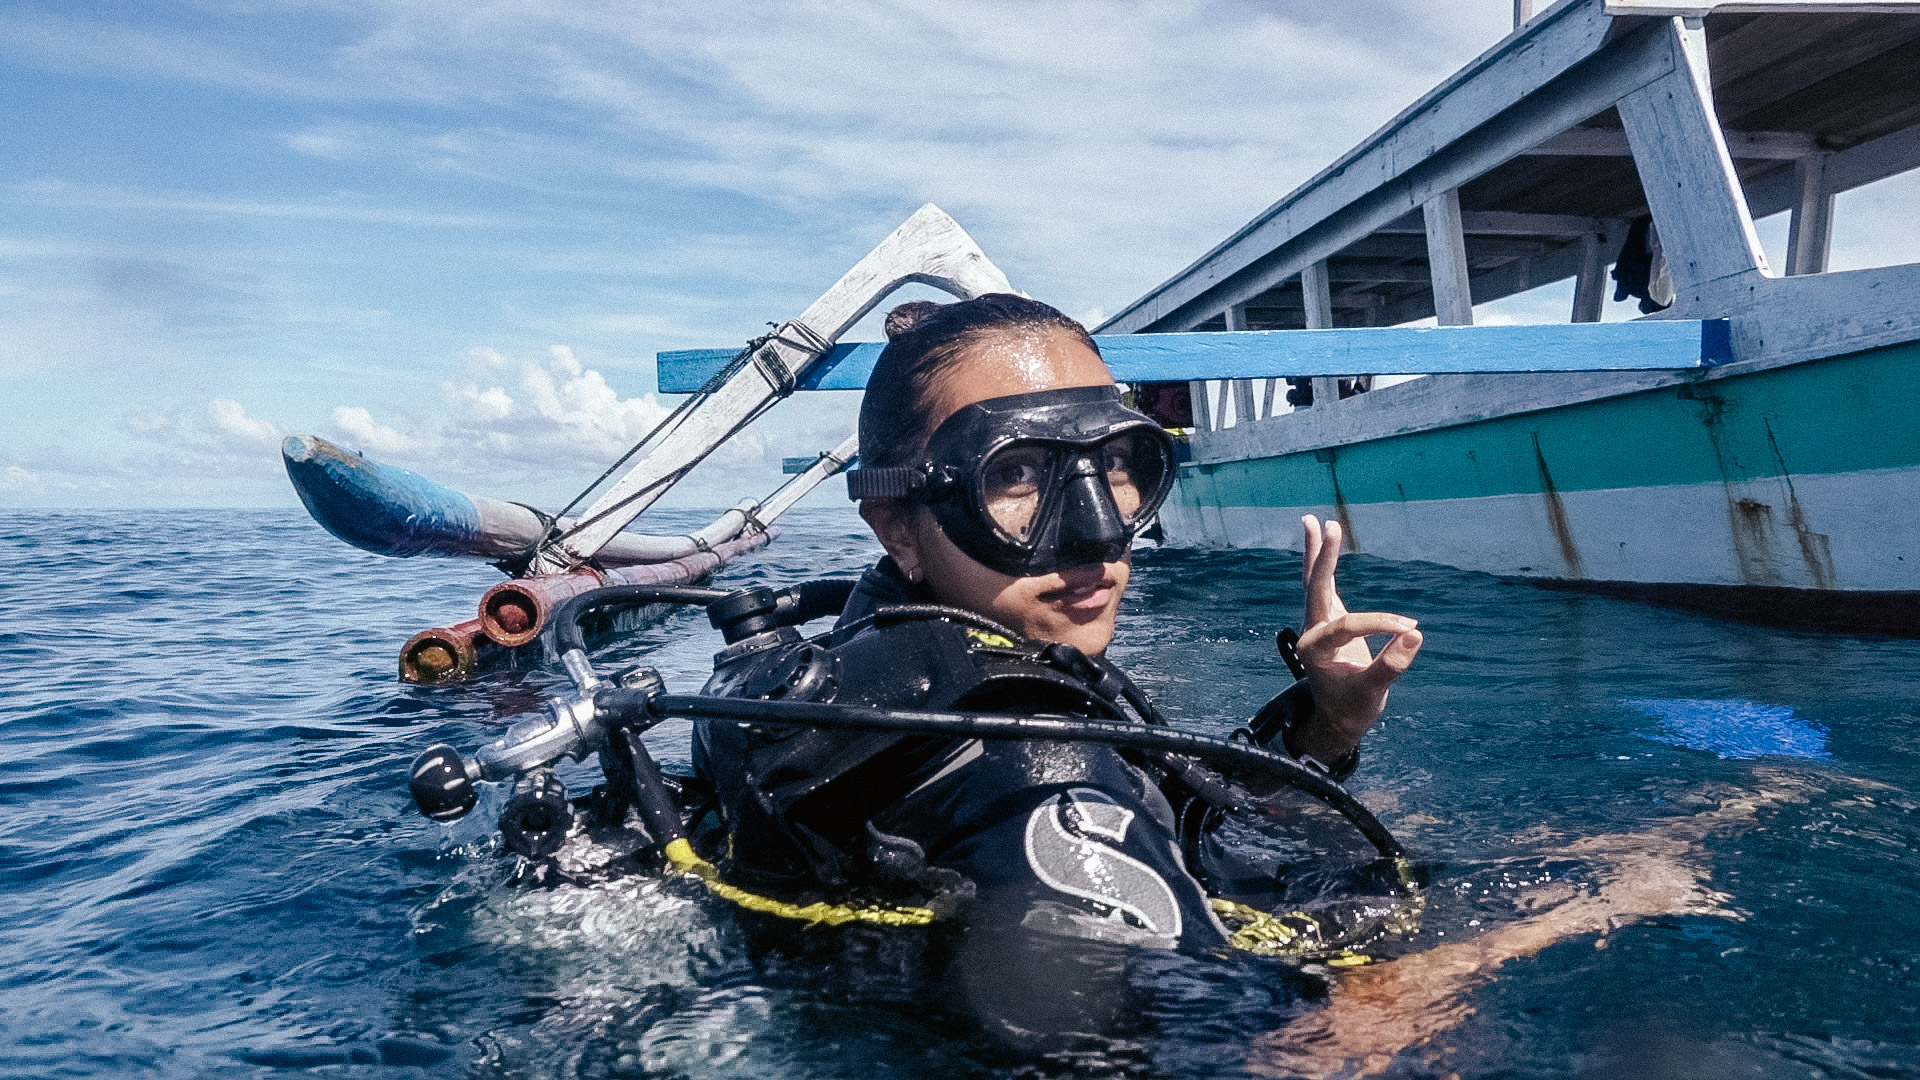 sirimah com - Travels - PADI Open Water Diver Course · Experience